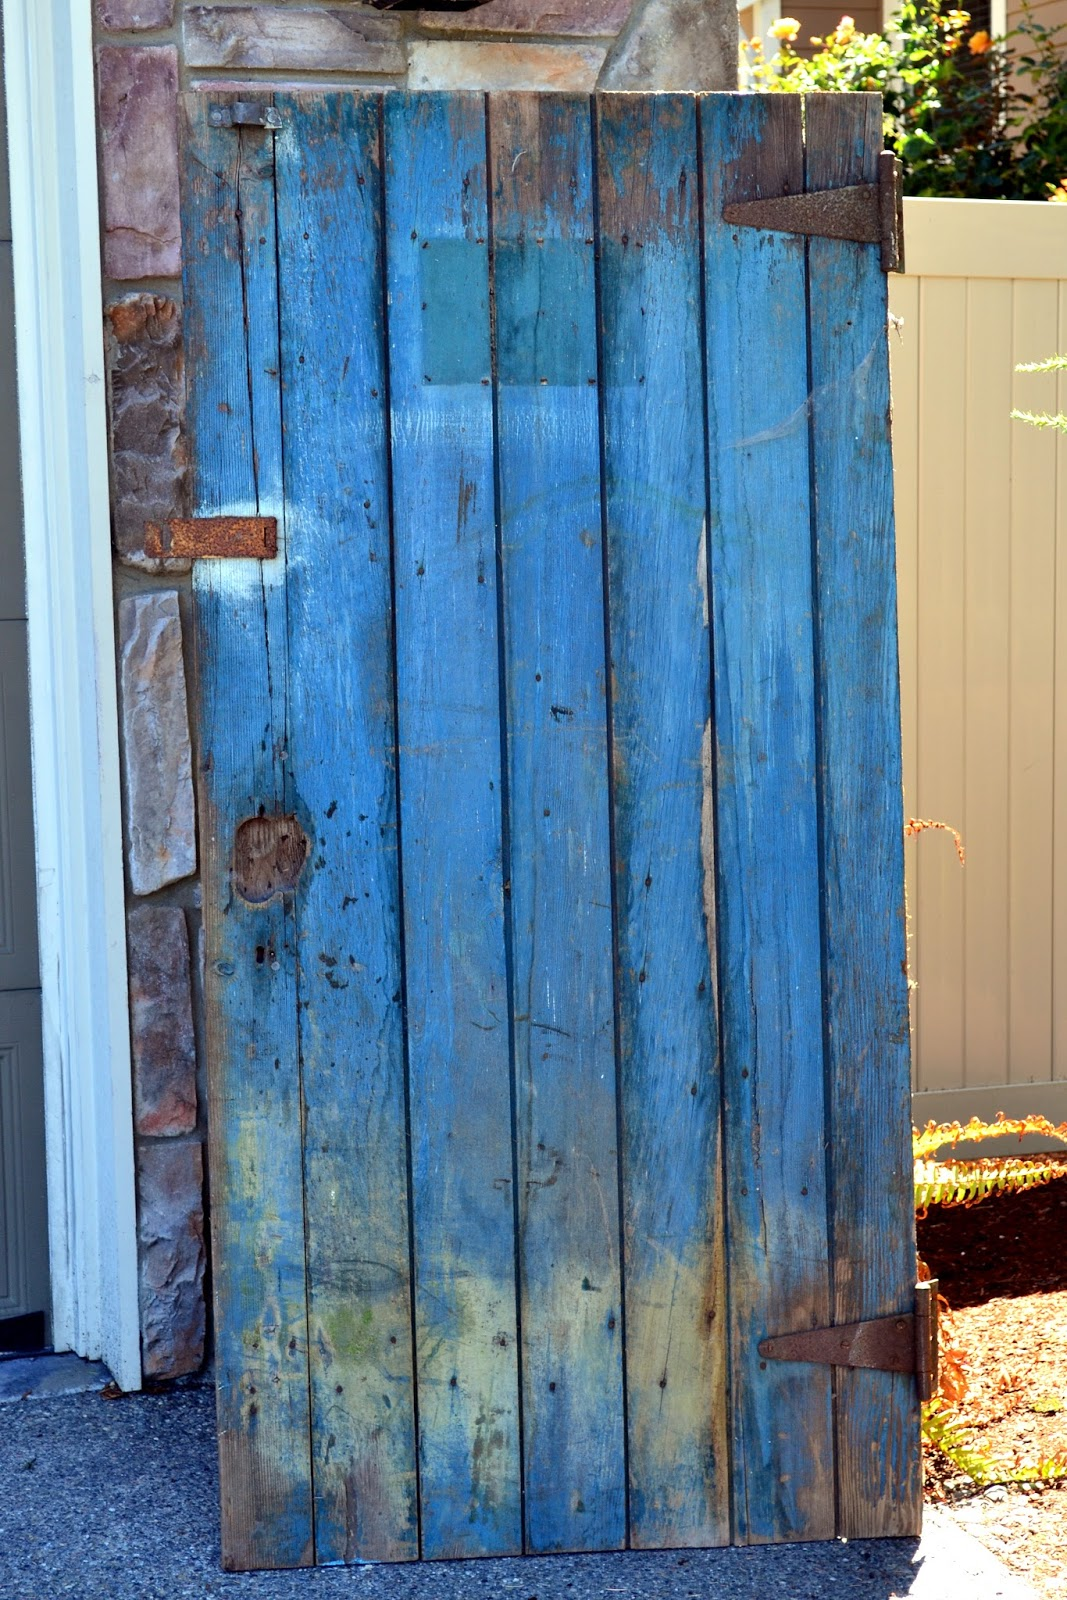 This Blue Barn Door Was Leaning Up On Some Trees. I Walked Past It A Few  Times Because I Was Just A Little Bit Overwhelmed With All The Other Rusty  Junk ...